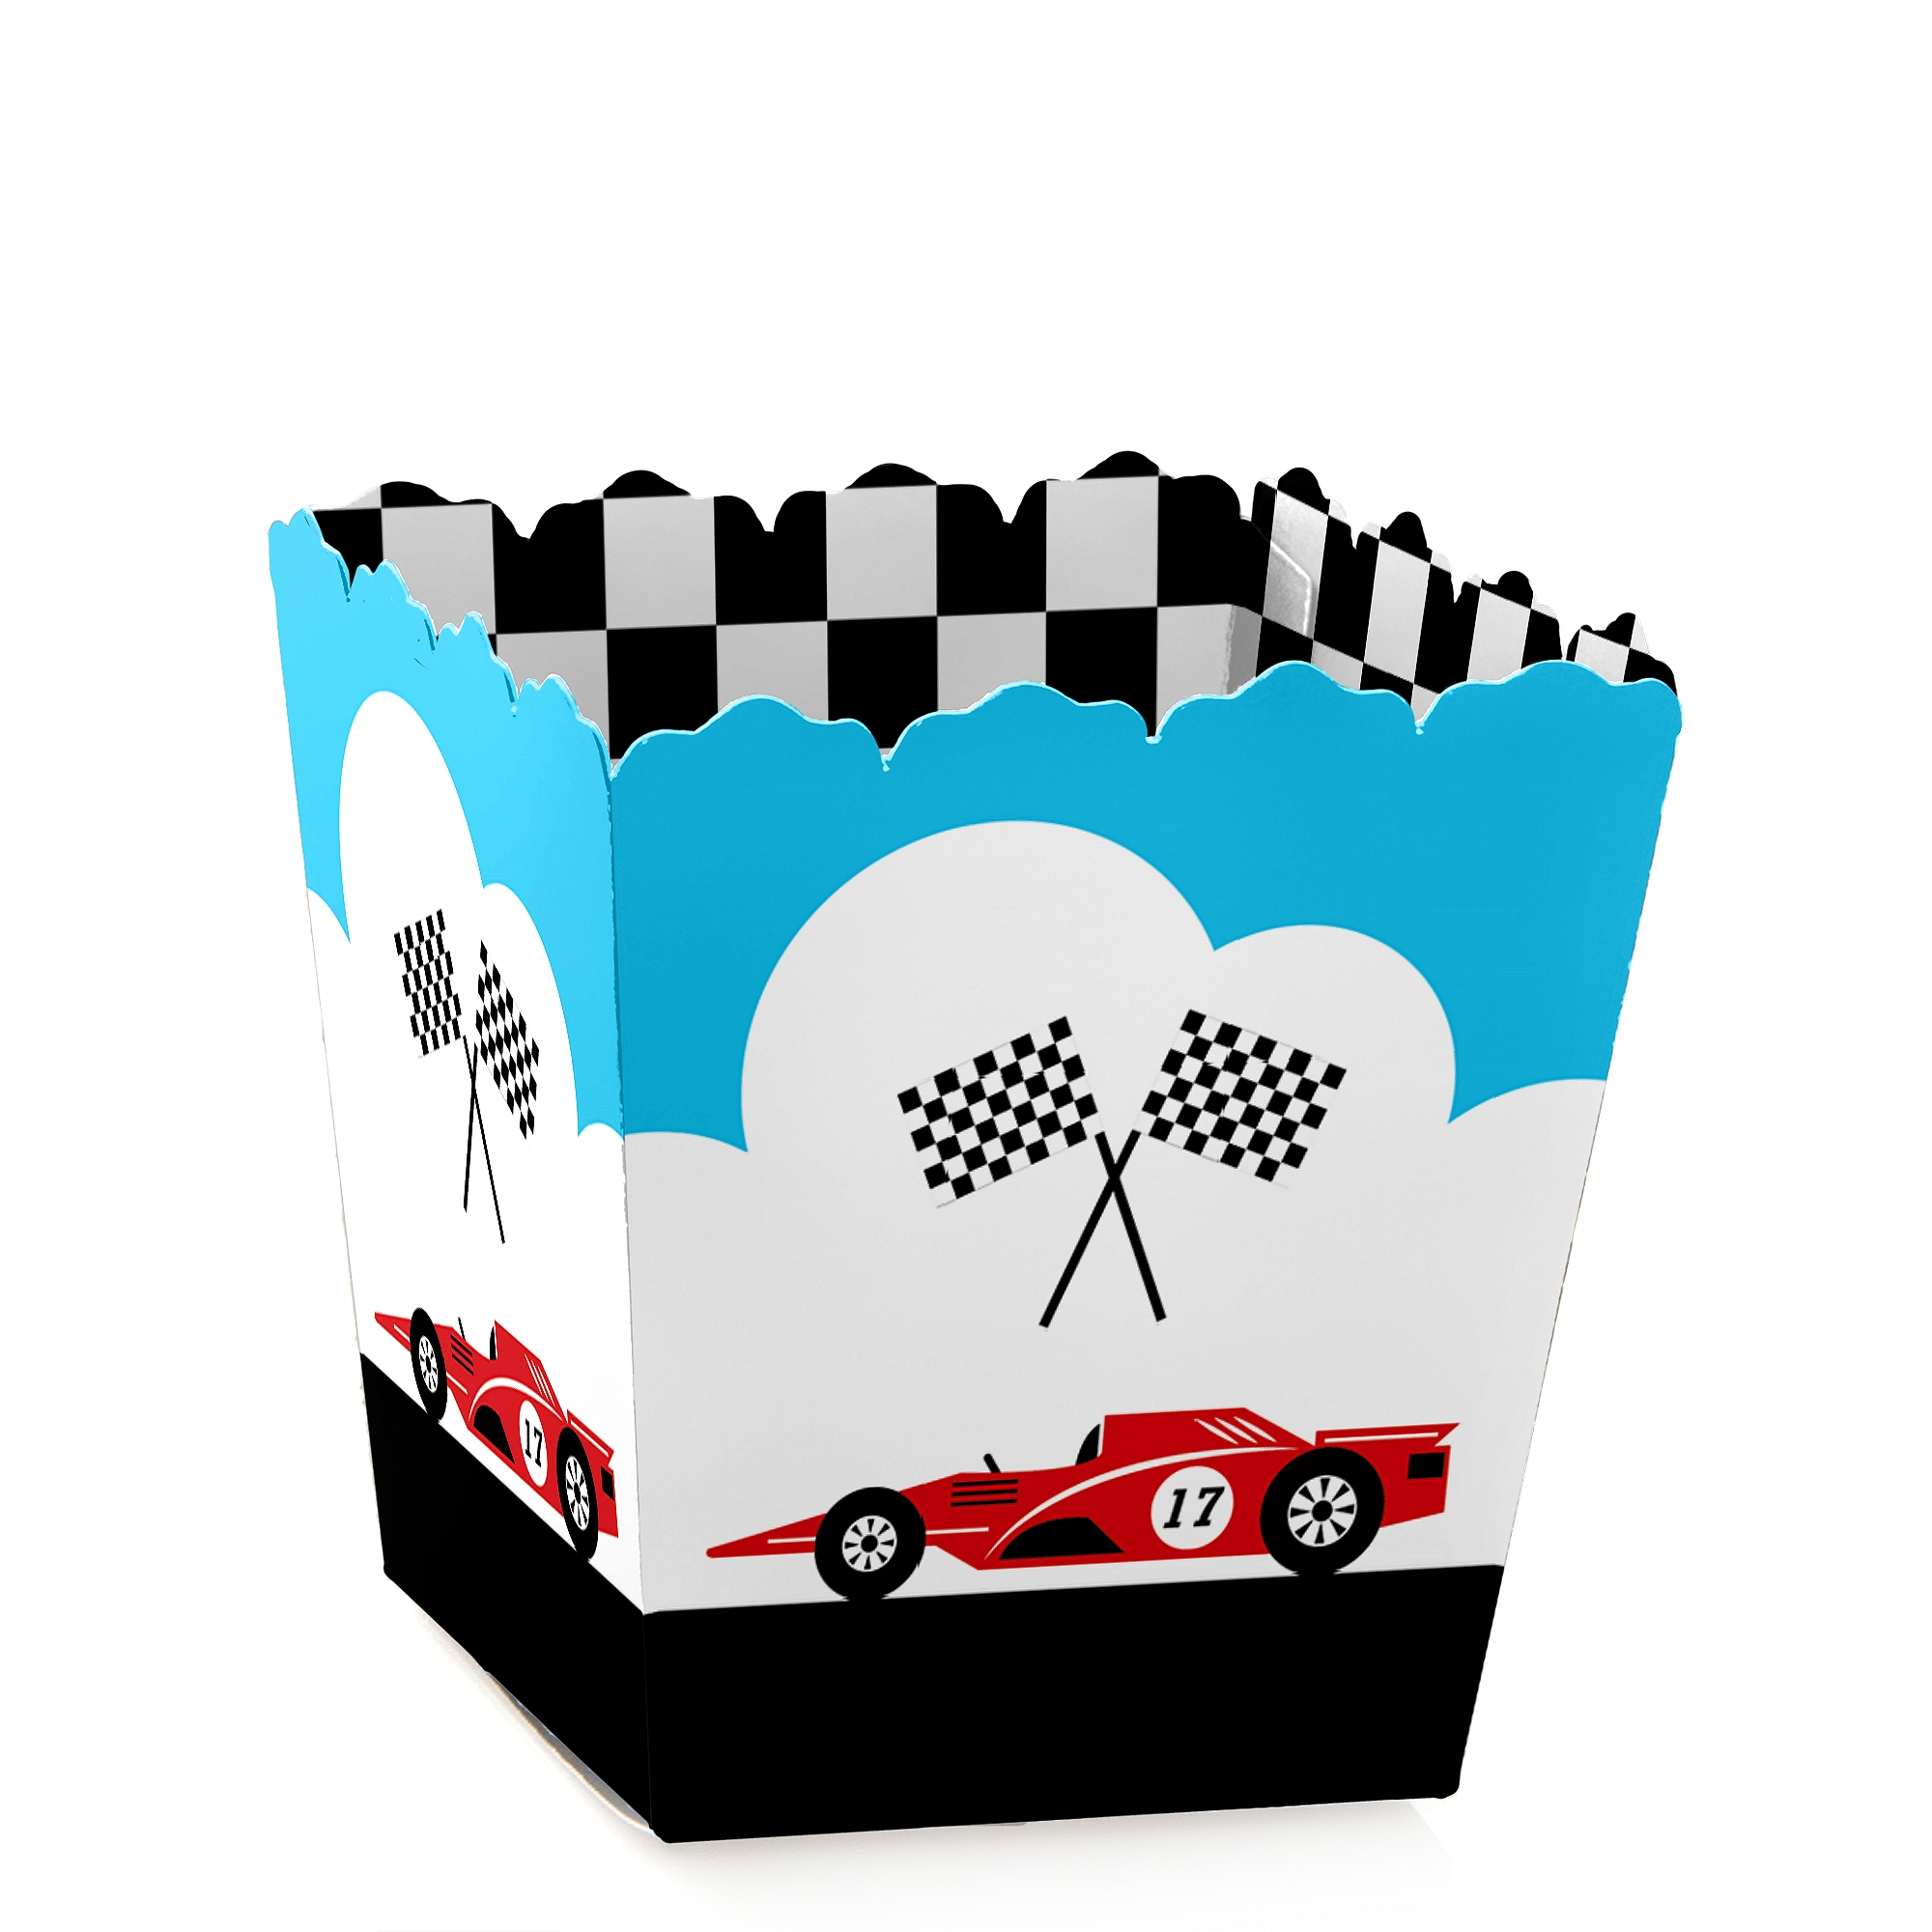 Let's Go Racing - Racecar - Party Mini Favor Boxes - Racing or Birthday Party Treat Candy Boxes - Set of 12